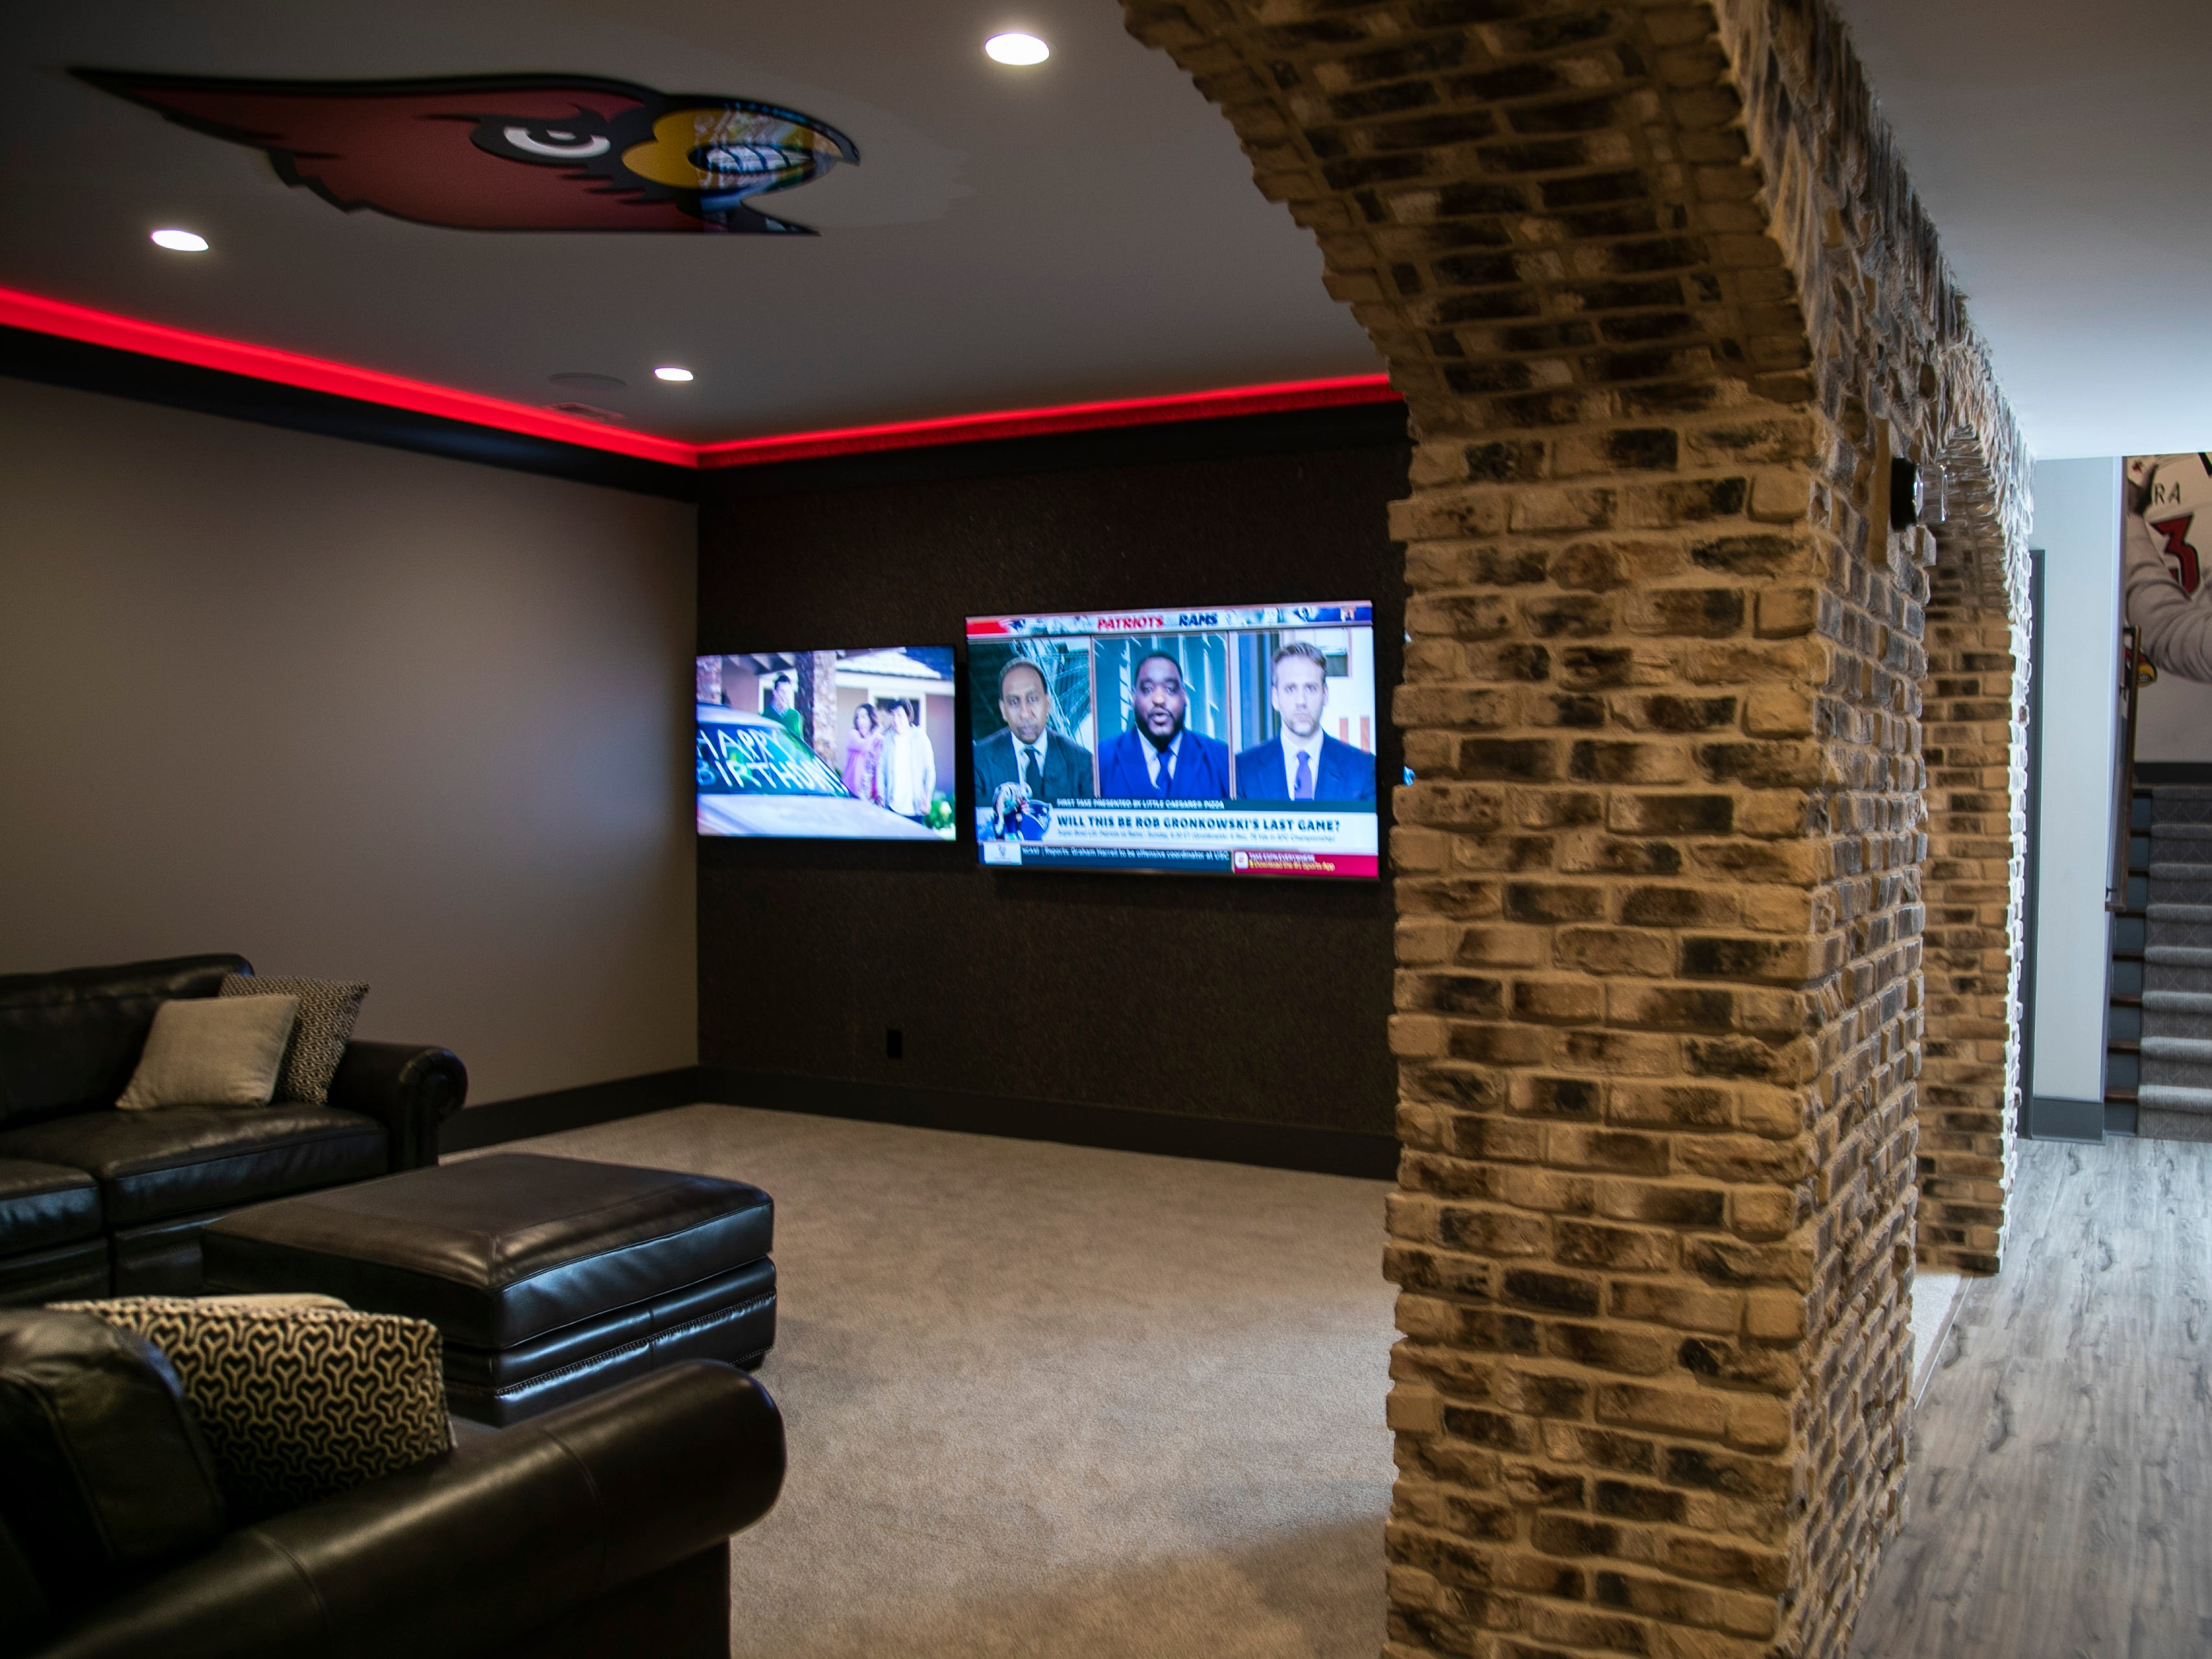 The basement of the Mack home features video games and plenty of flatscreen tvs that are often tuned to ESPN. There's also personal memorabilia such as a signed Red photo by Pete Rose, and Christi Mack's Hall of Fame jersey.